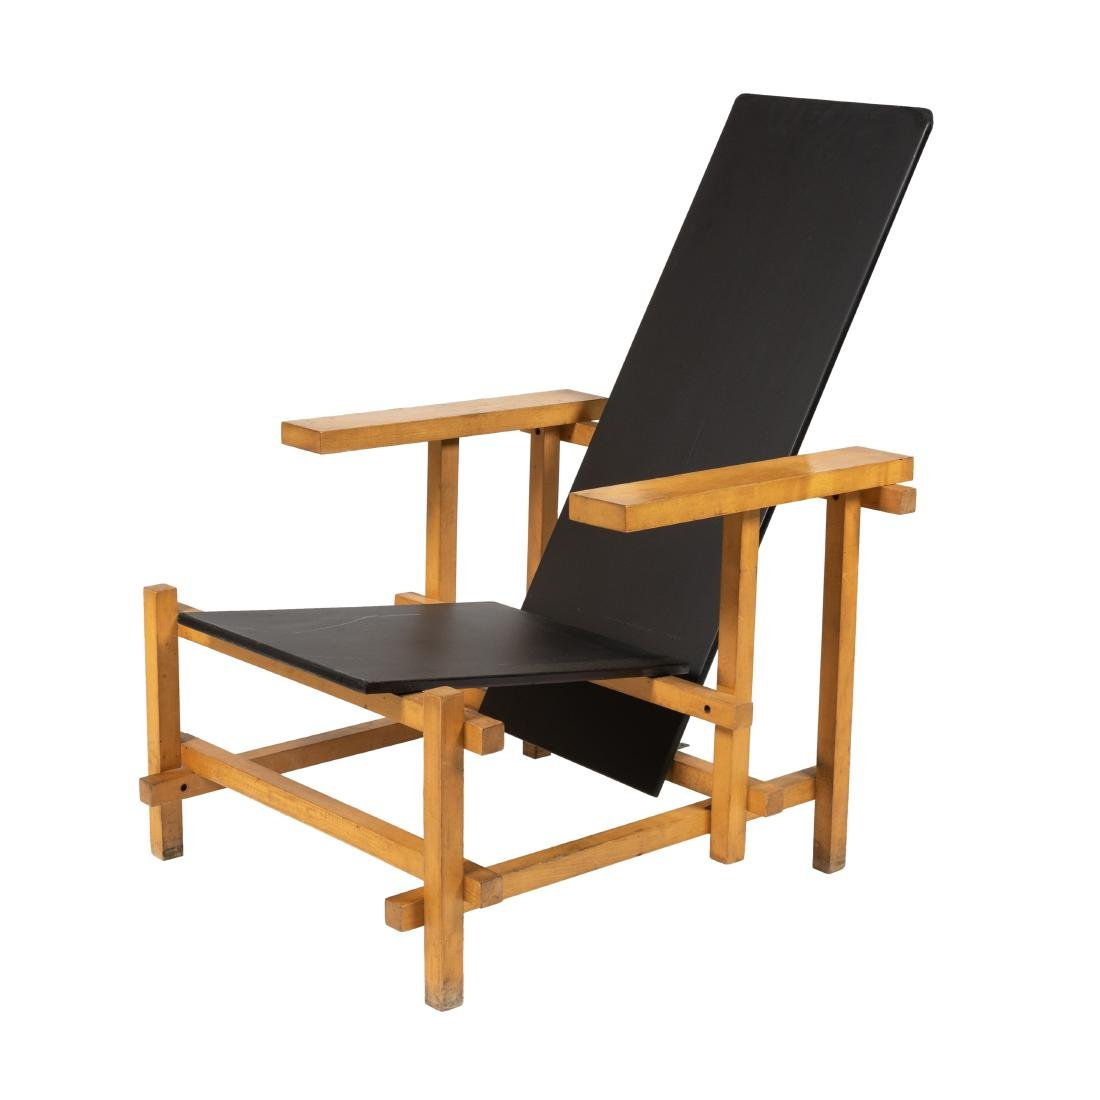 After Gerrit Rietveld - Lounge Chair